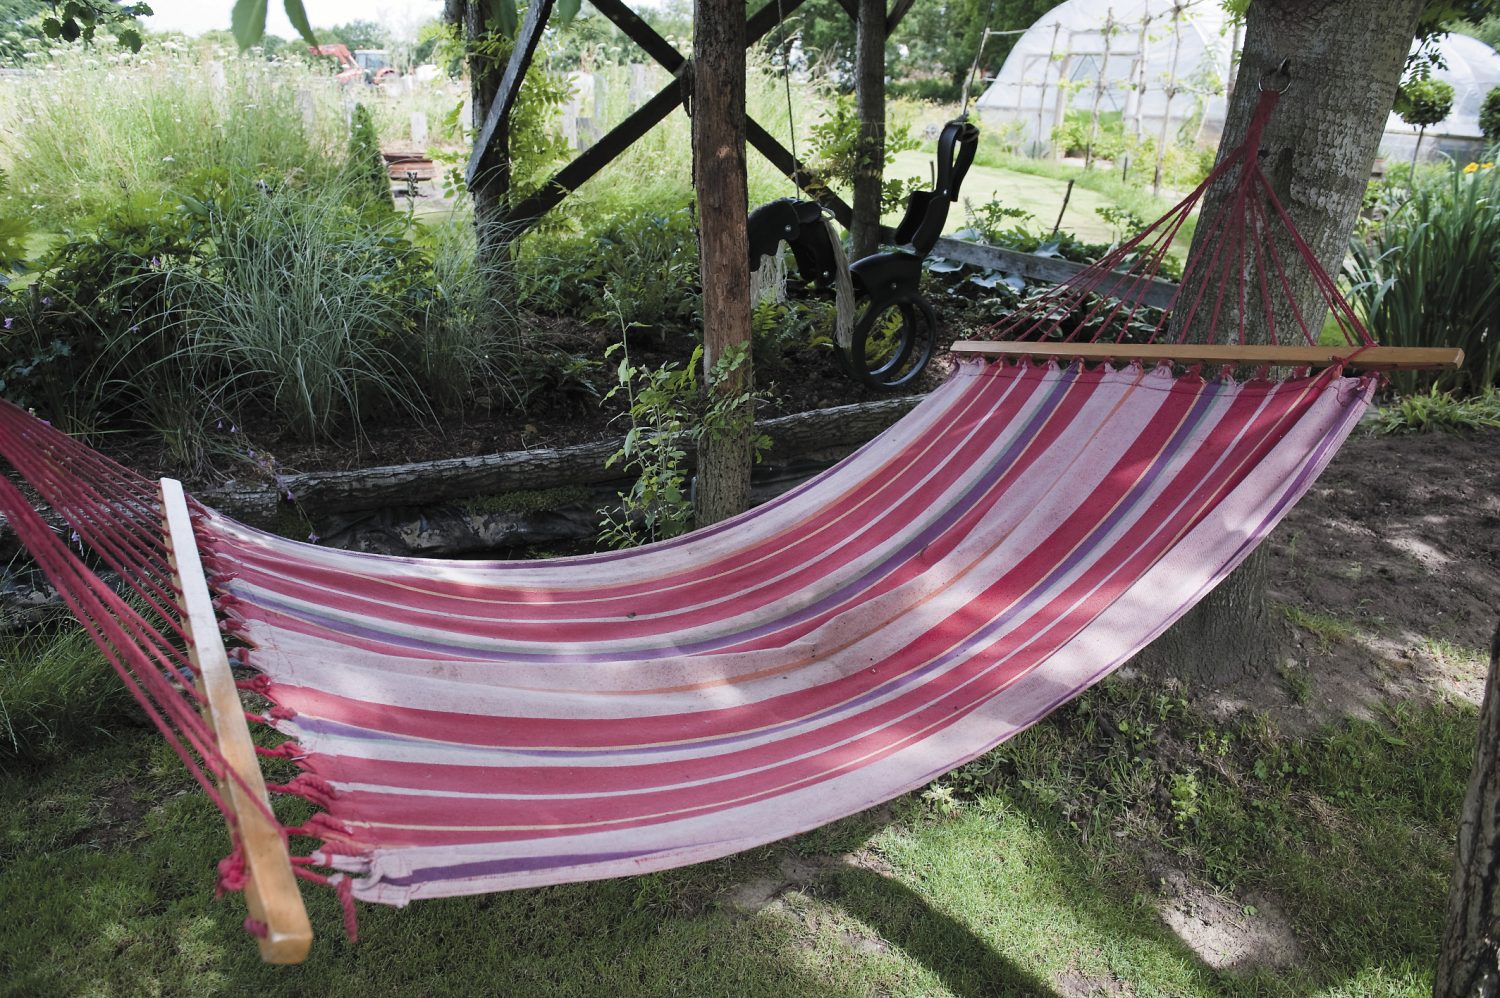 A generously sized hammock is slung under a superb tree-house, the leafy roof of which is provided by the tree itself